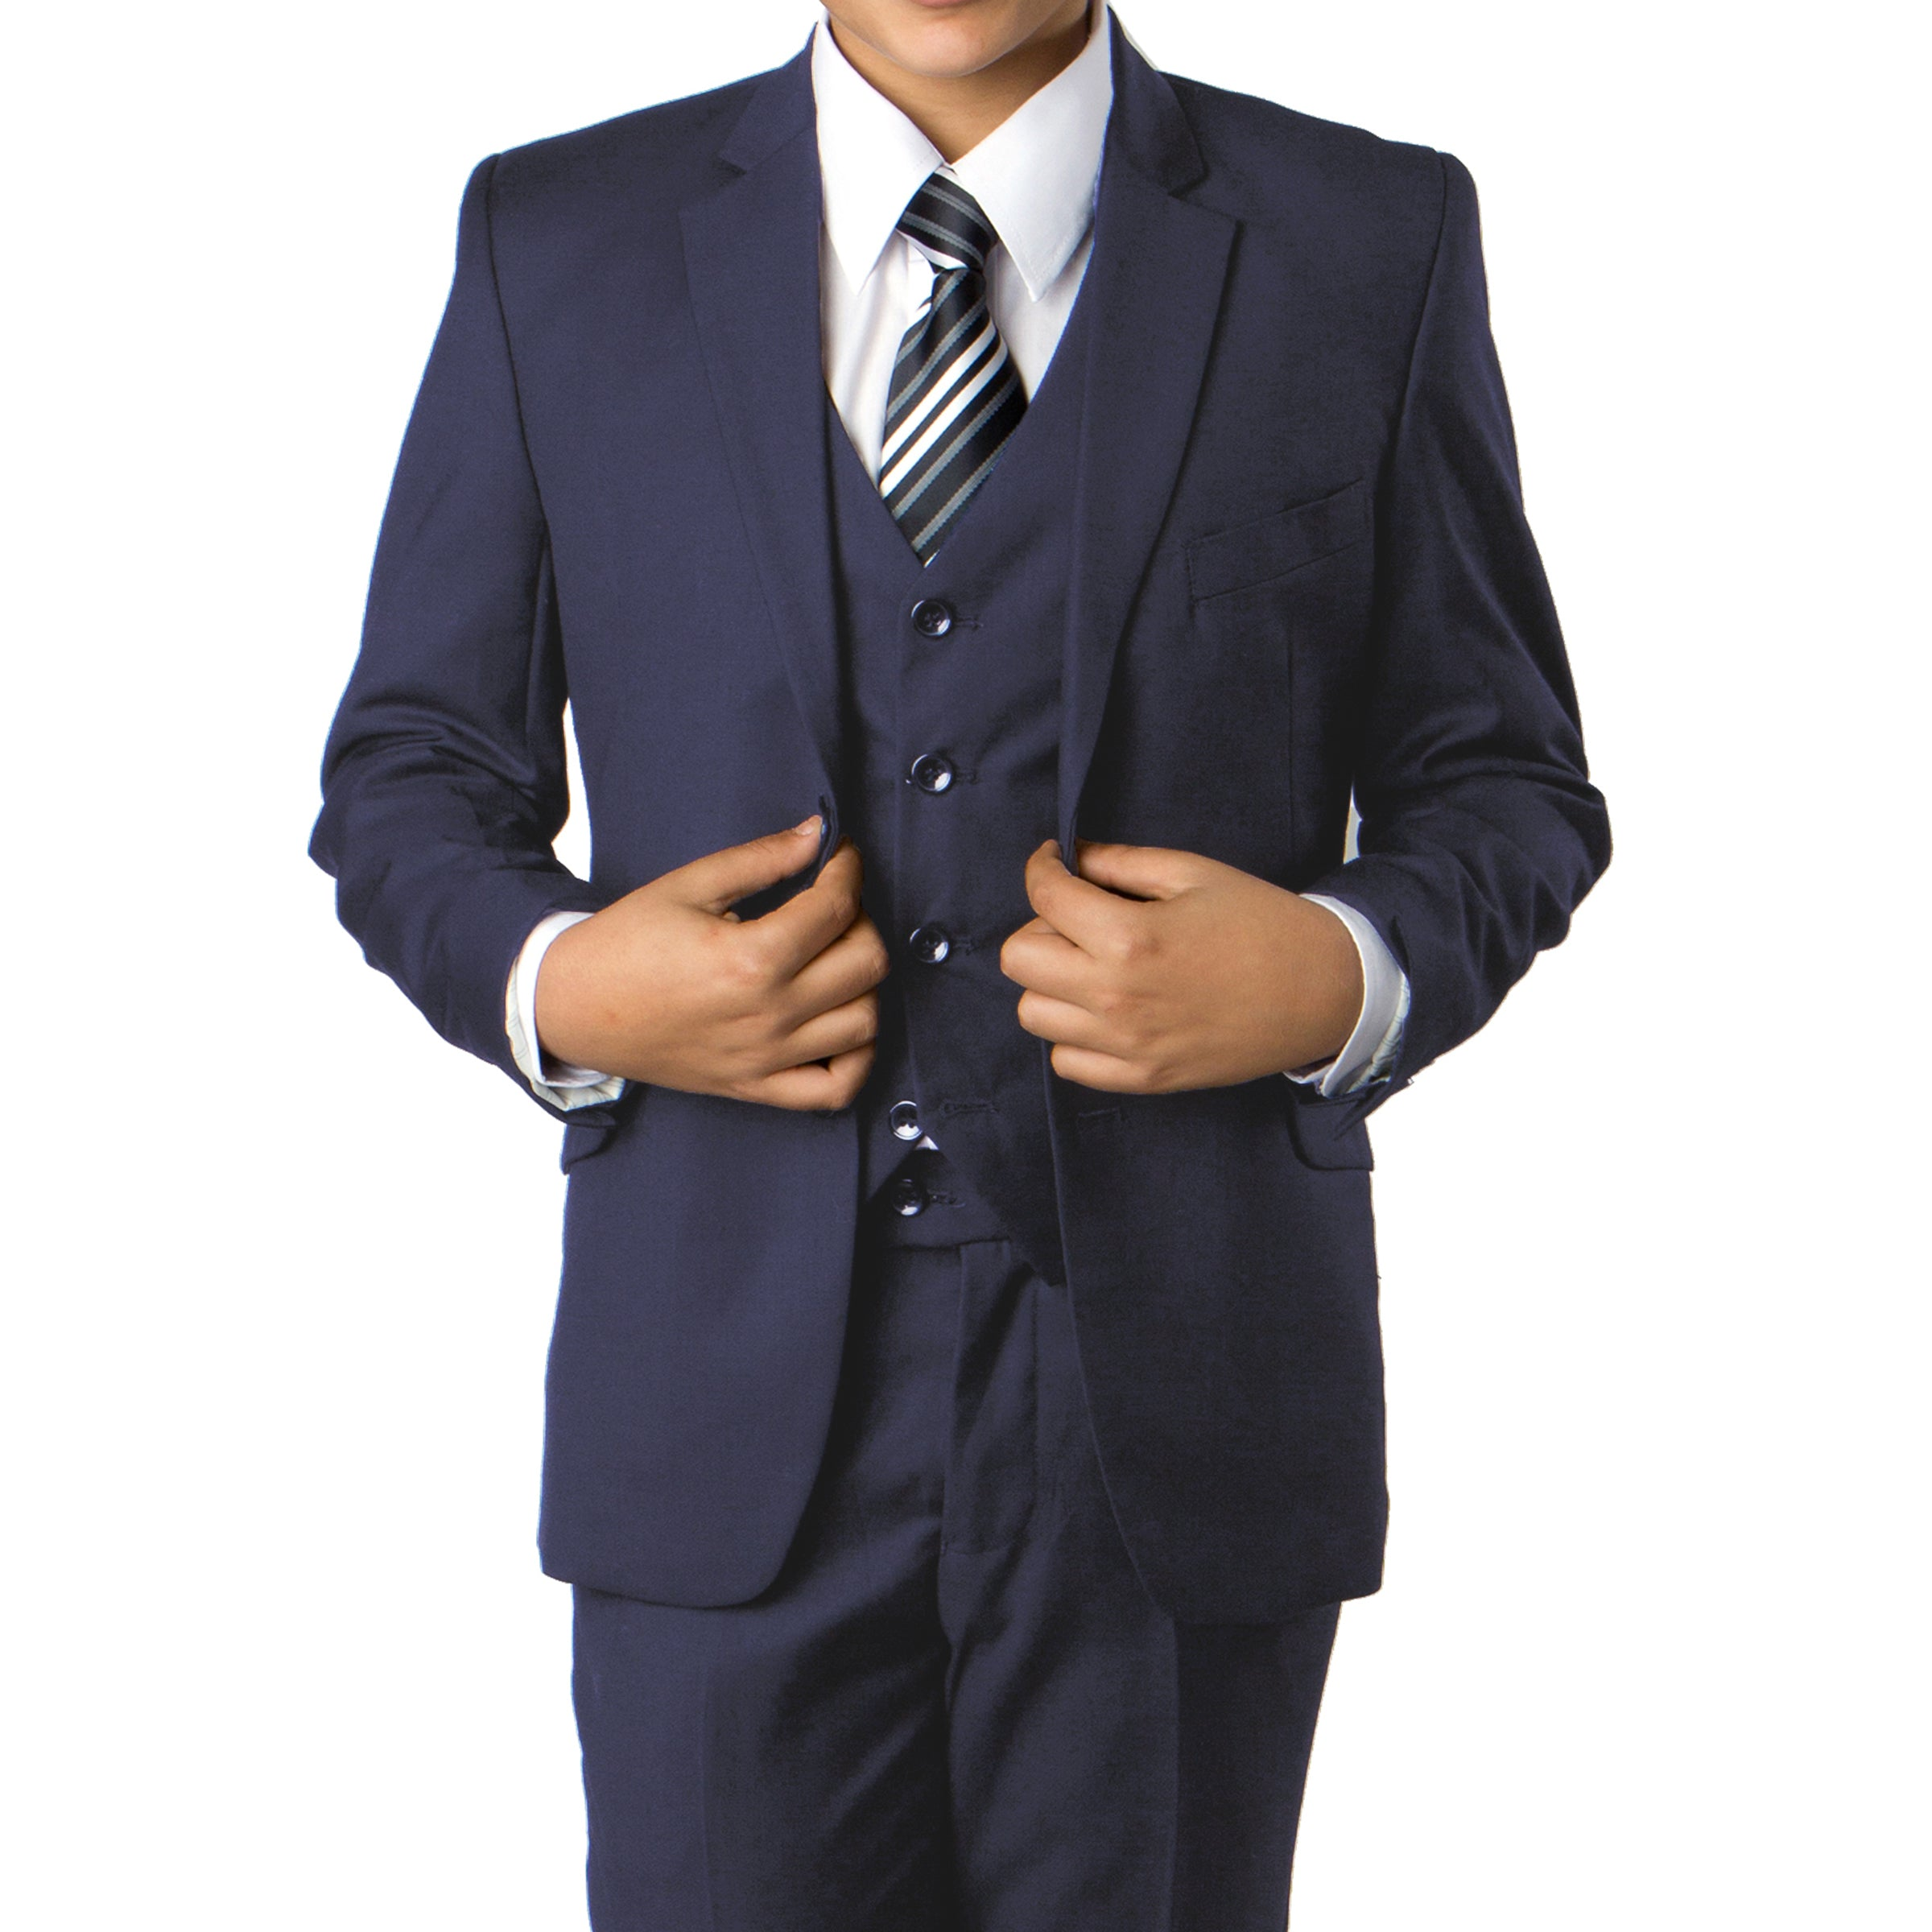 Navy Suit For Boys Formal Suits For All Ocassions B358-02